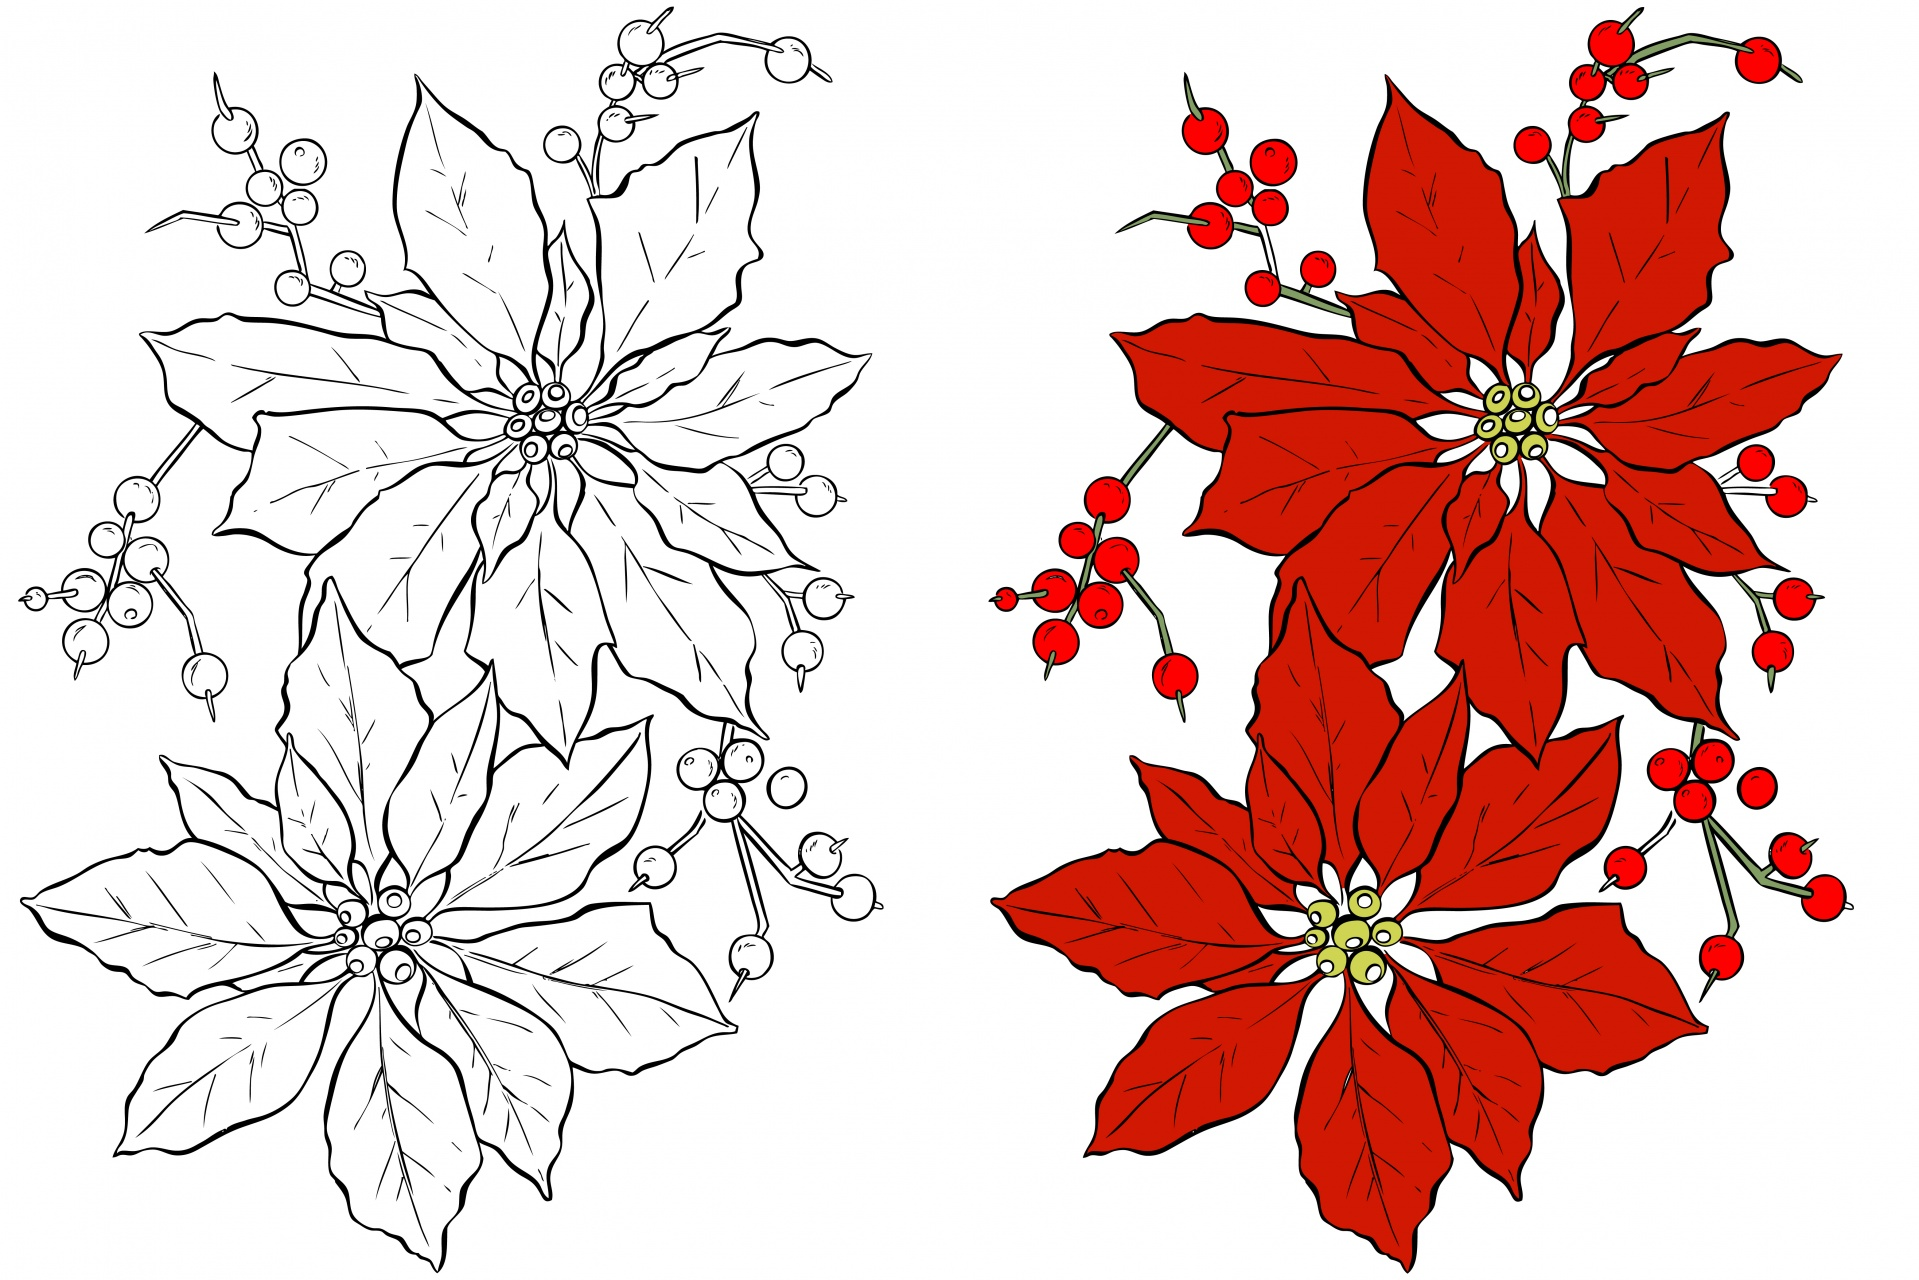 poinsettia flower coloring free stock photo public domain pictures poinsetta activities coloring pages Poinsetta Coloring Page